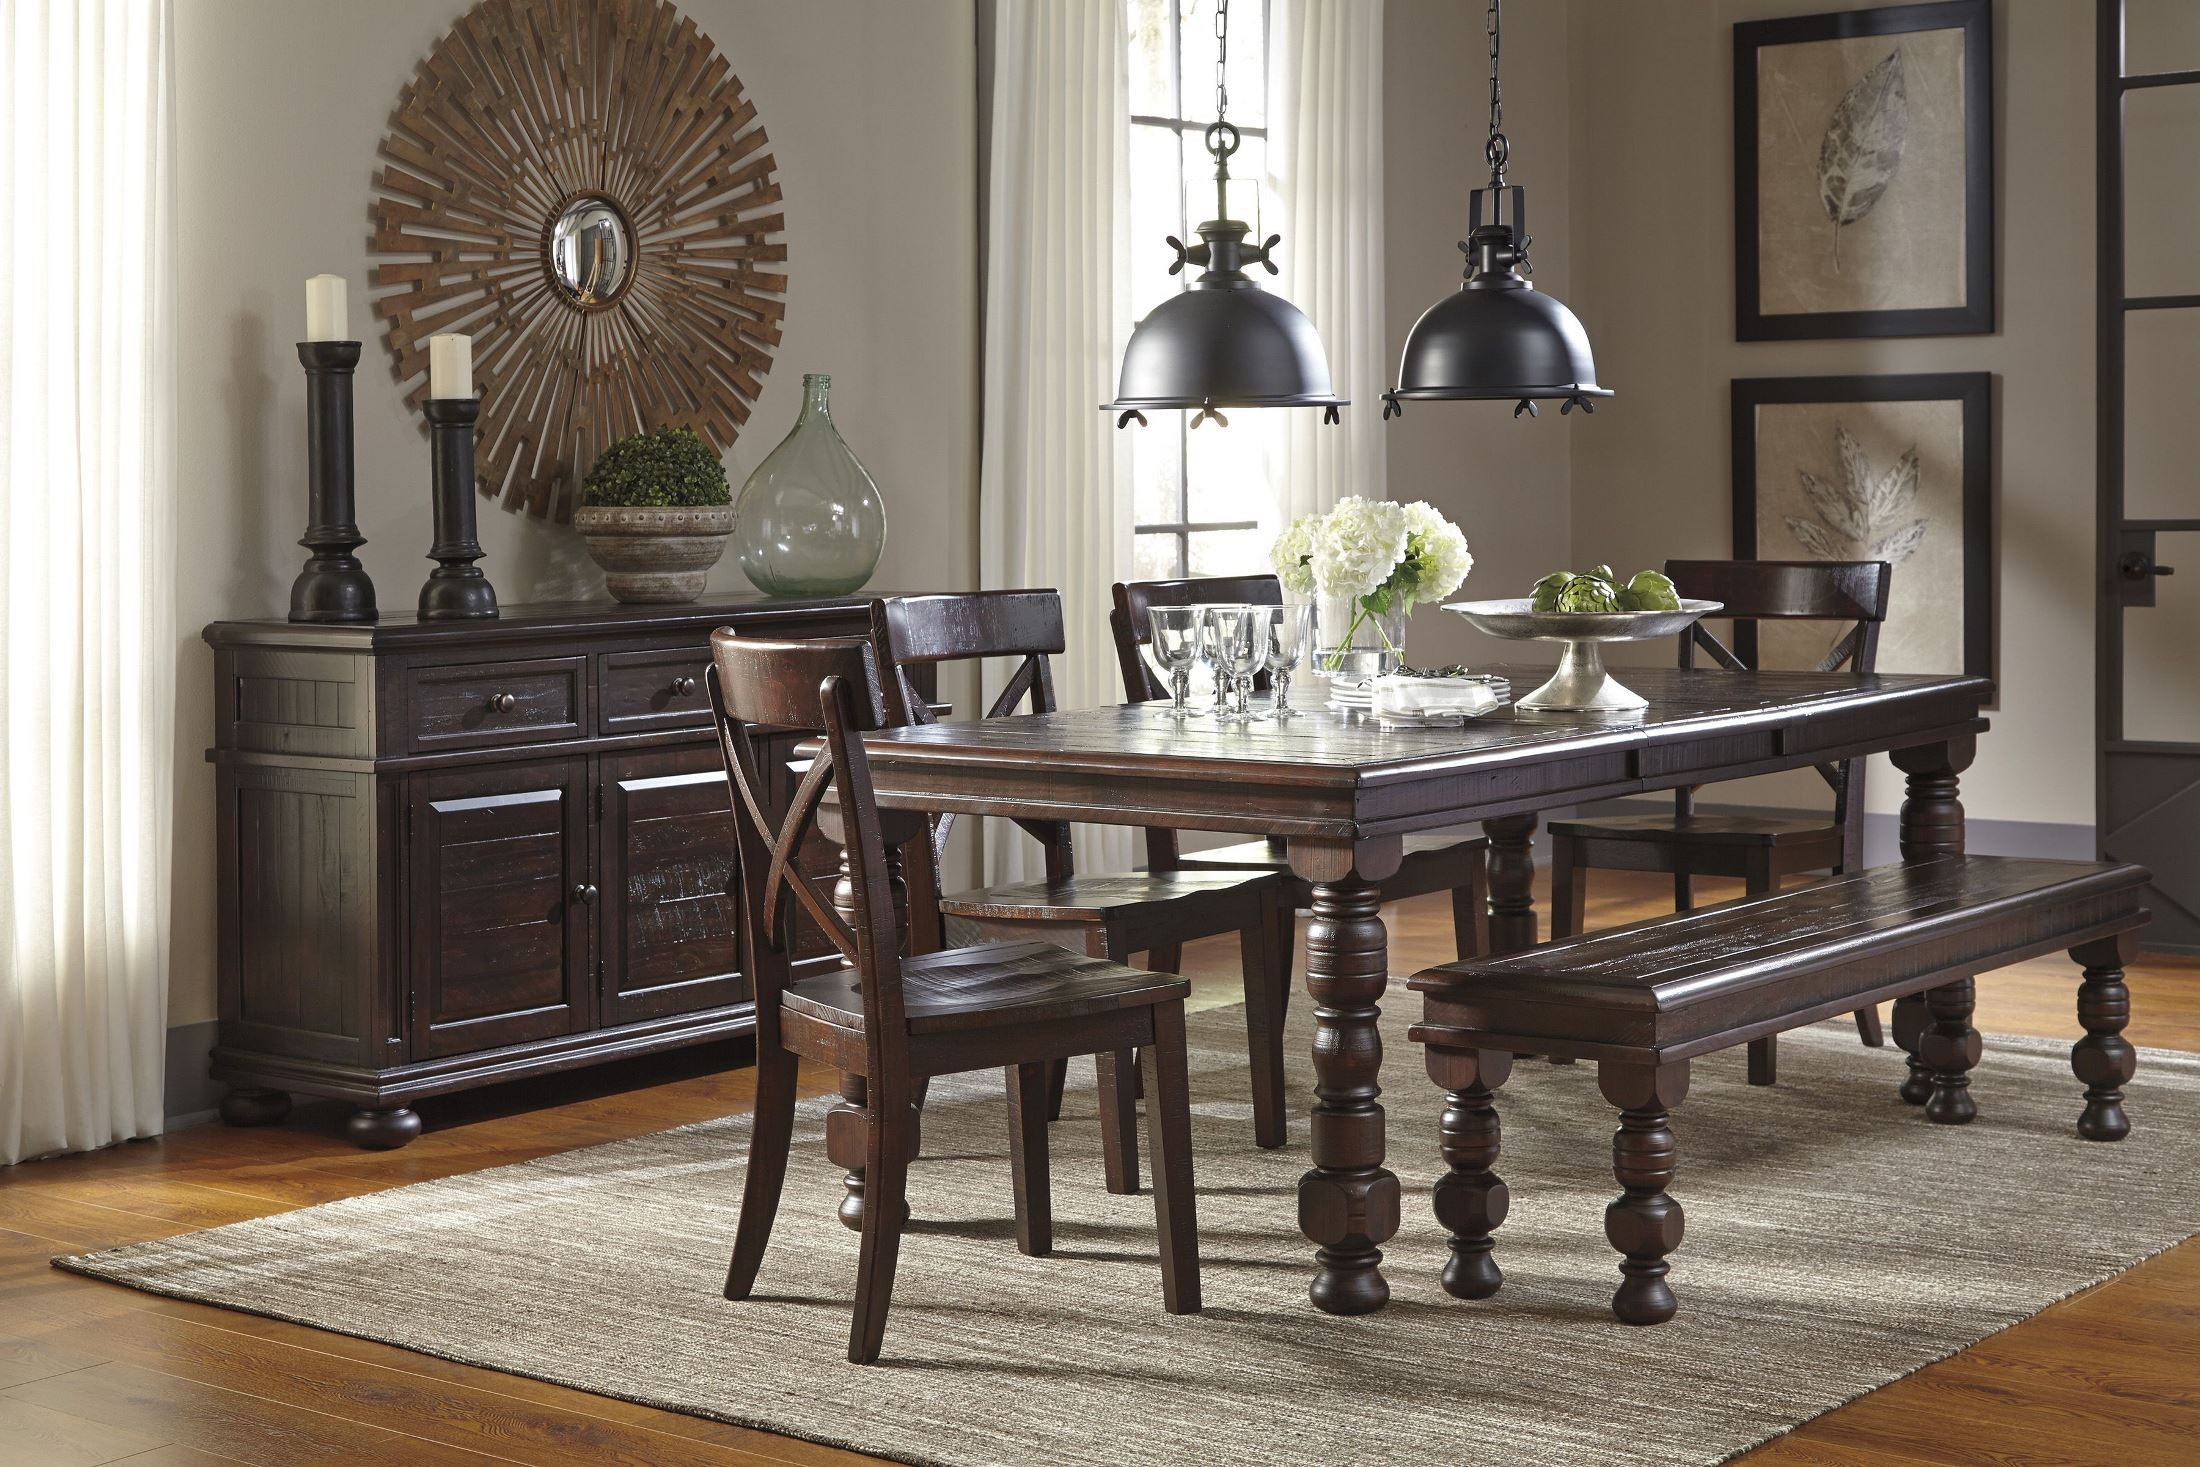 Gerlane dark brown dining room bench from ashley d657 00 for Dark brown dining room